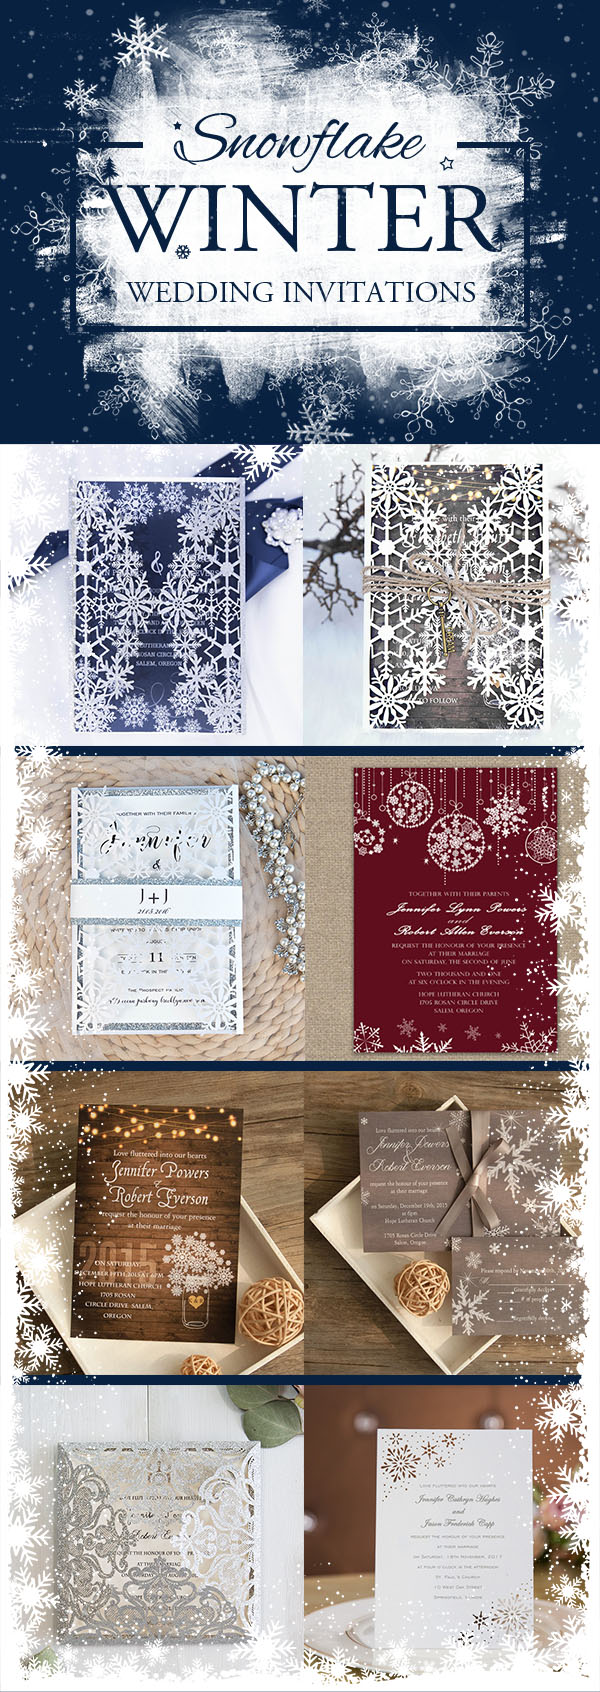 Romantic Snowflake Wedding Invitations Ideas for Winter Brides